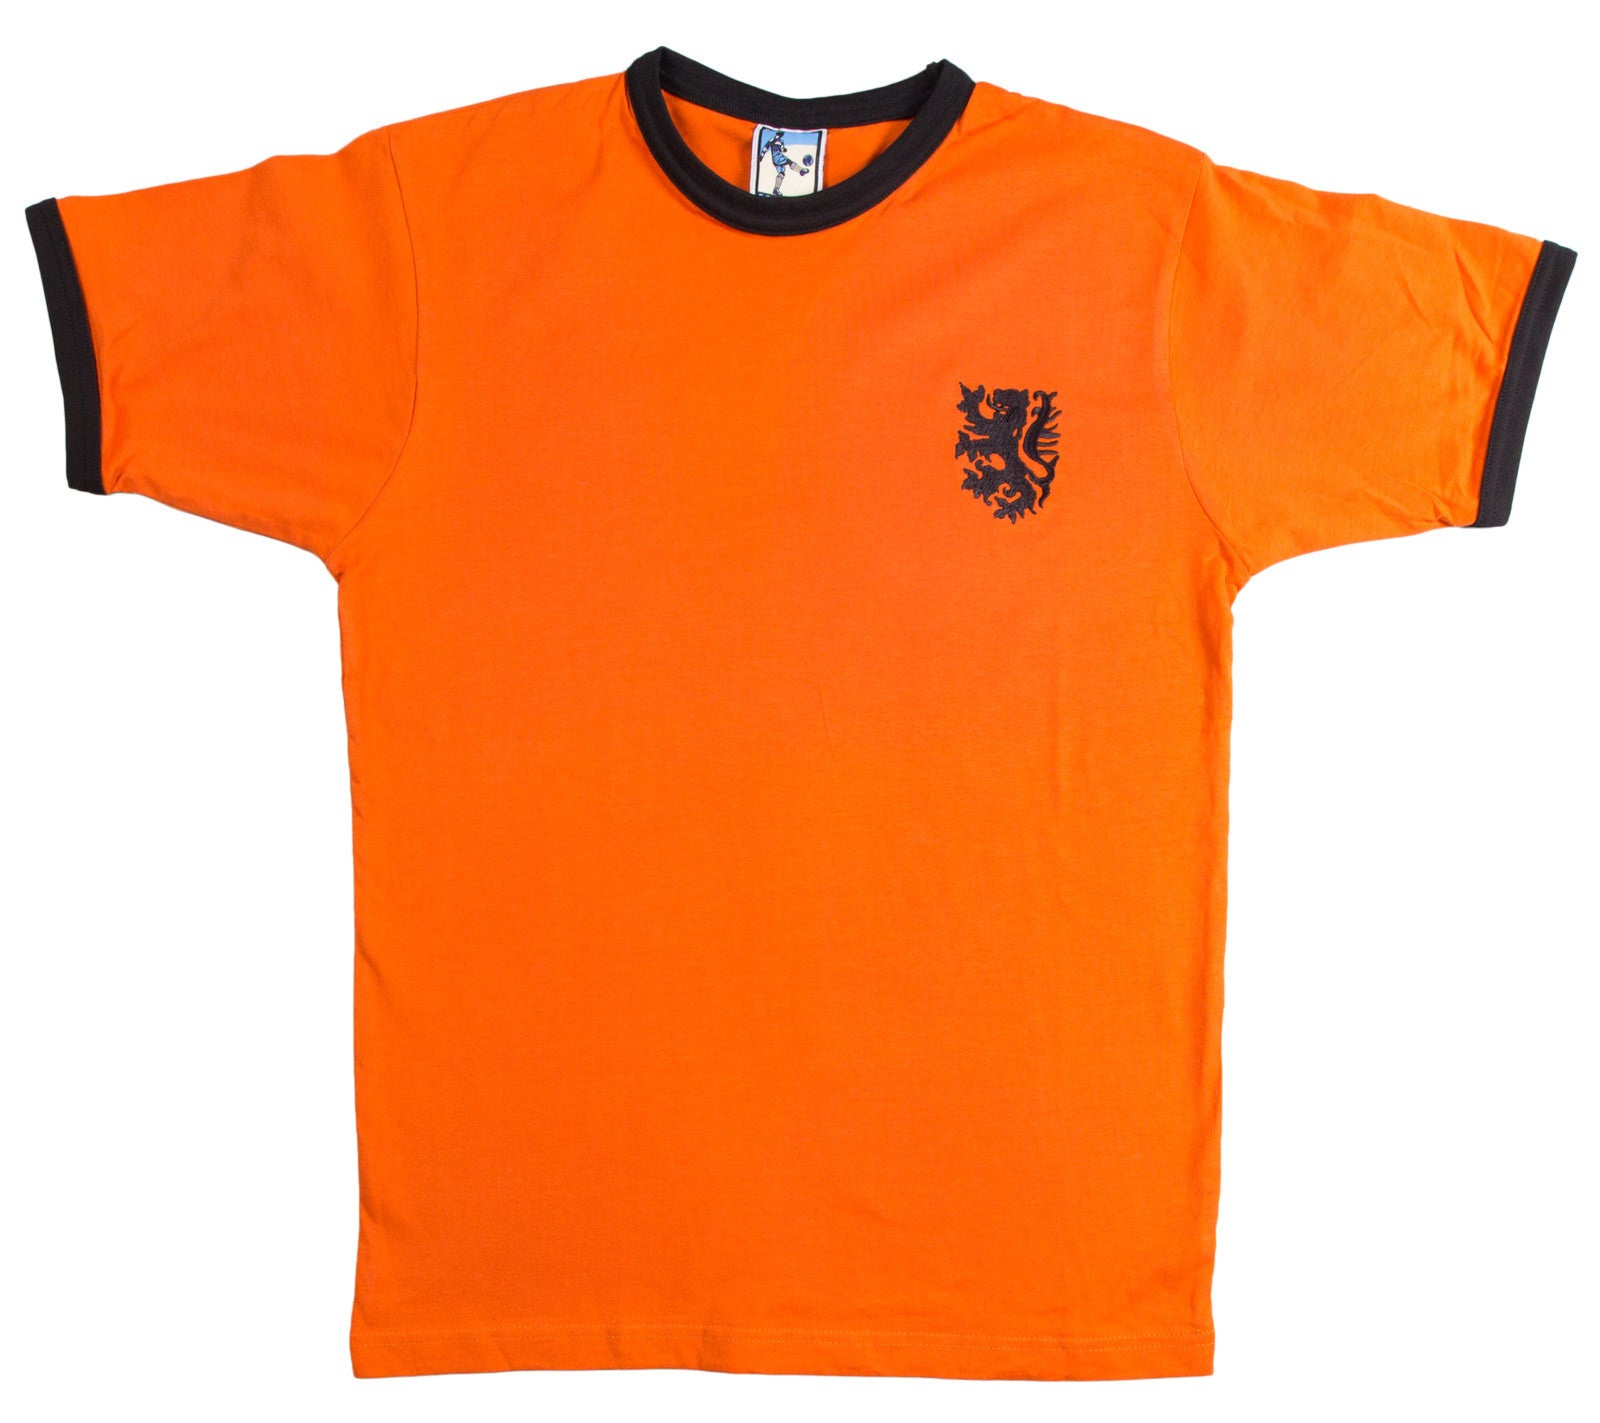 info for 0fd08 946db Holland Retro Football T Shirt 1970s Netherlands